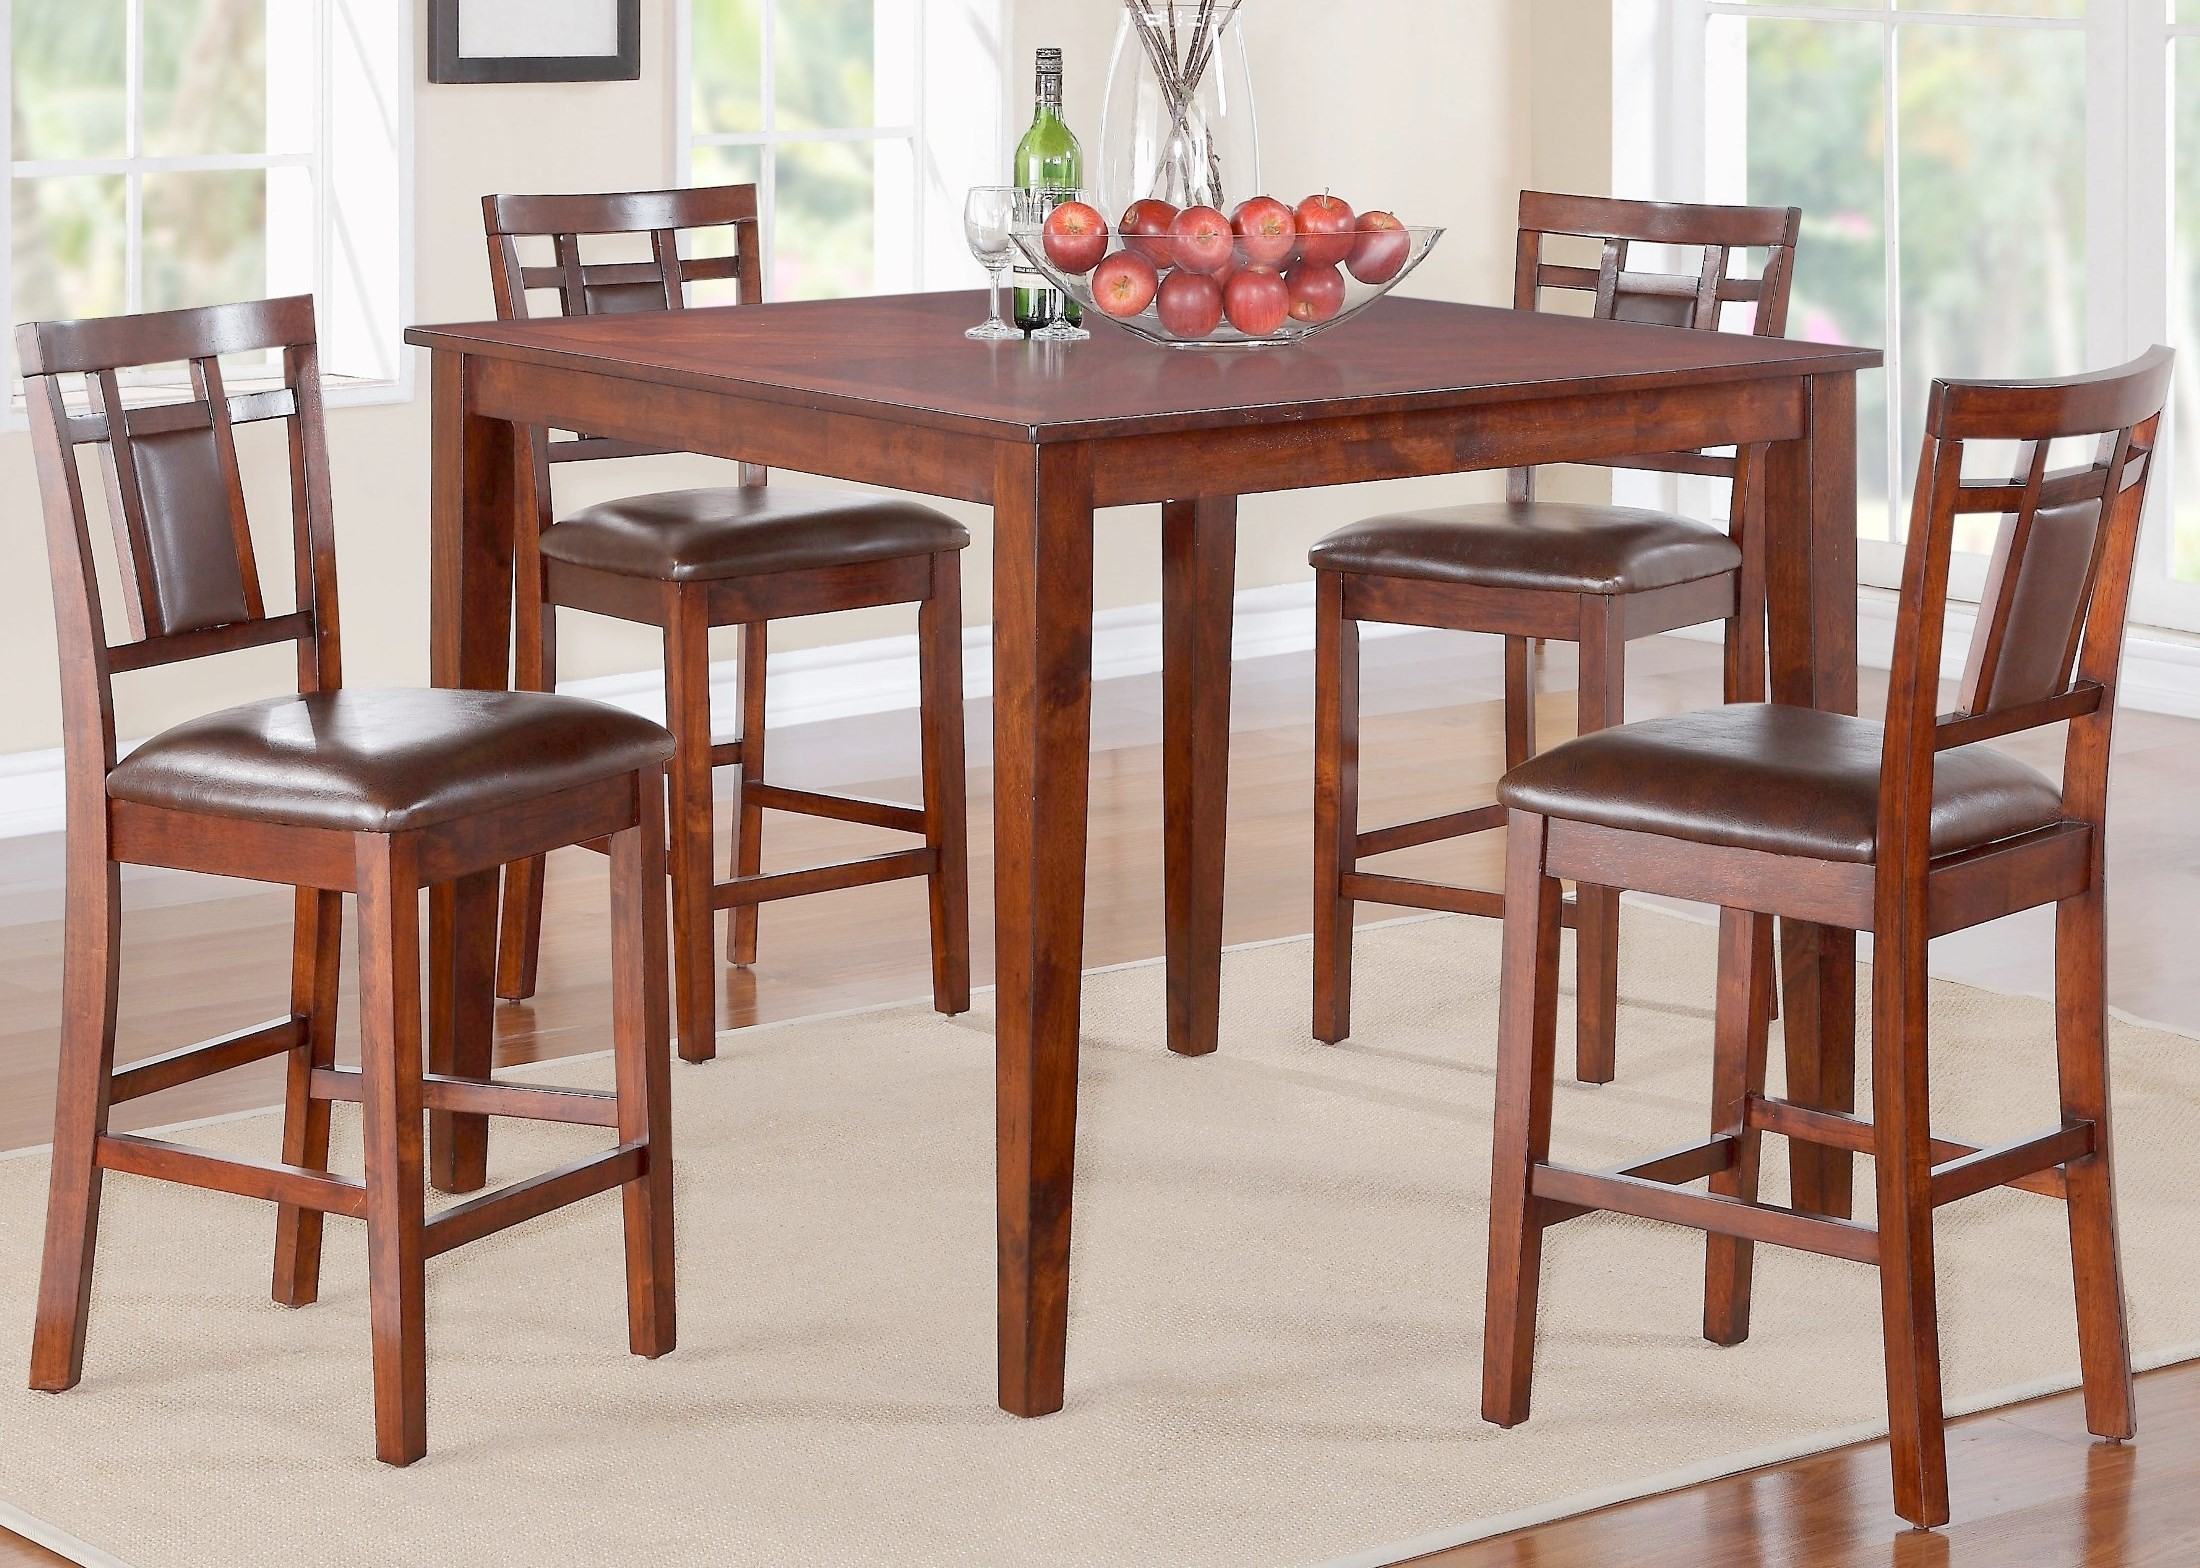 Westlake Dining Room Set With  Table With  Chairs